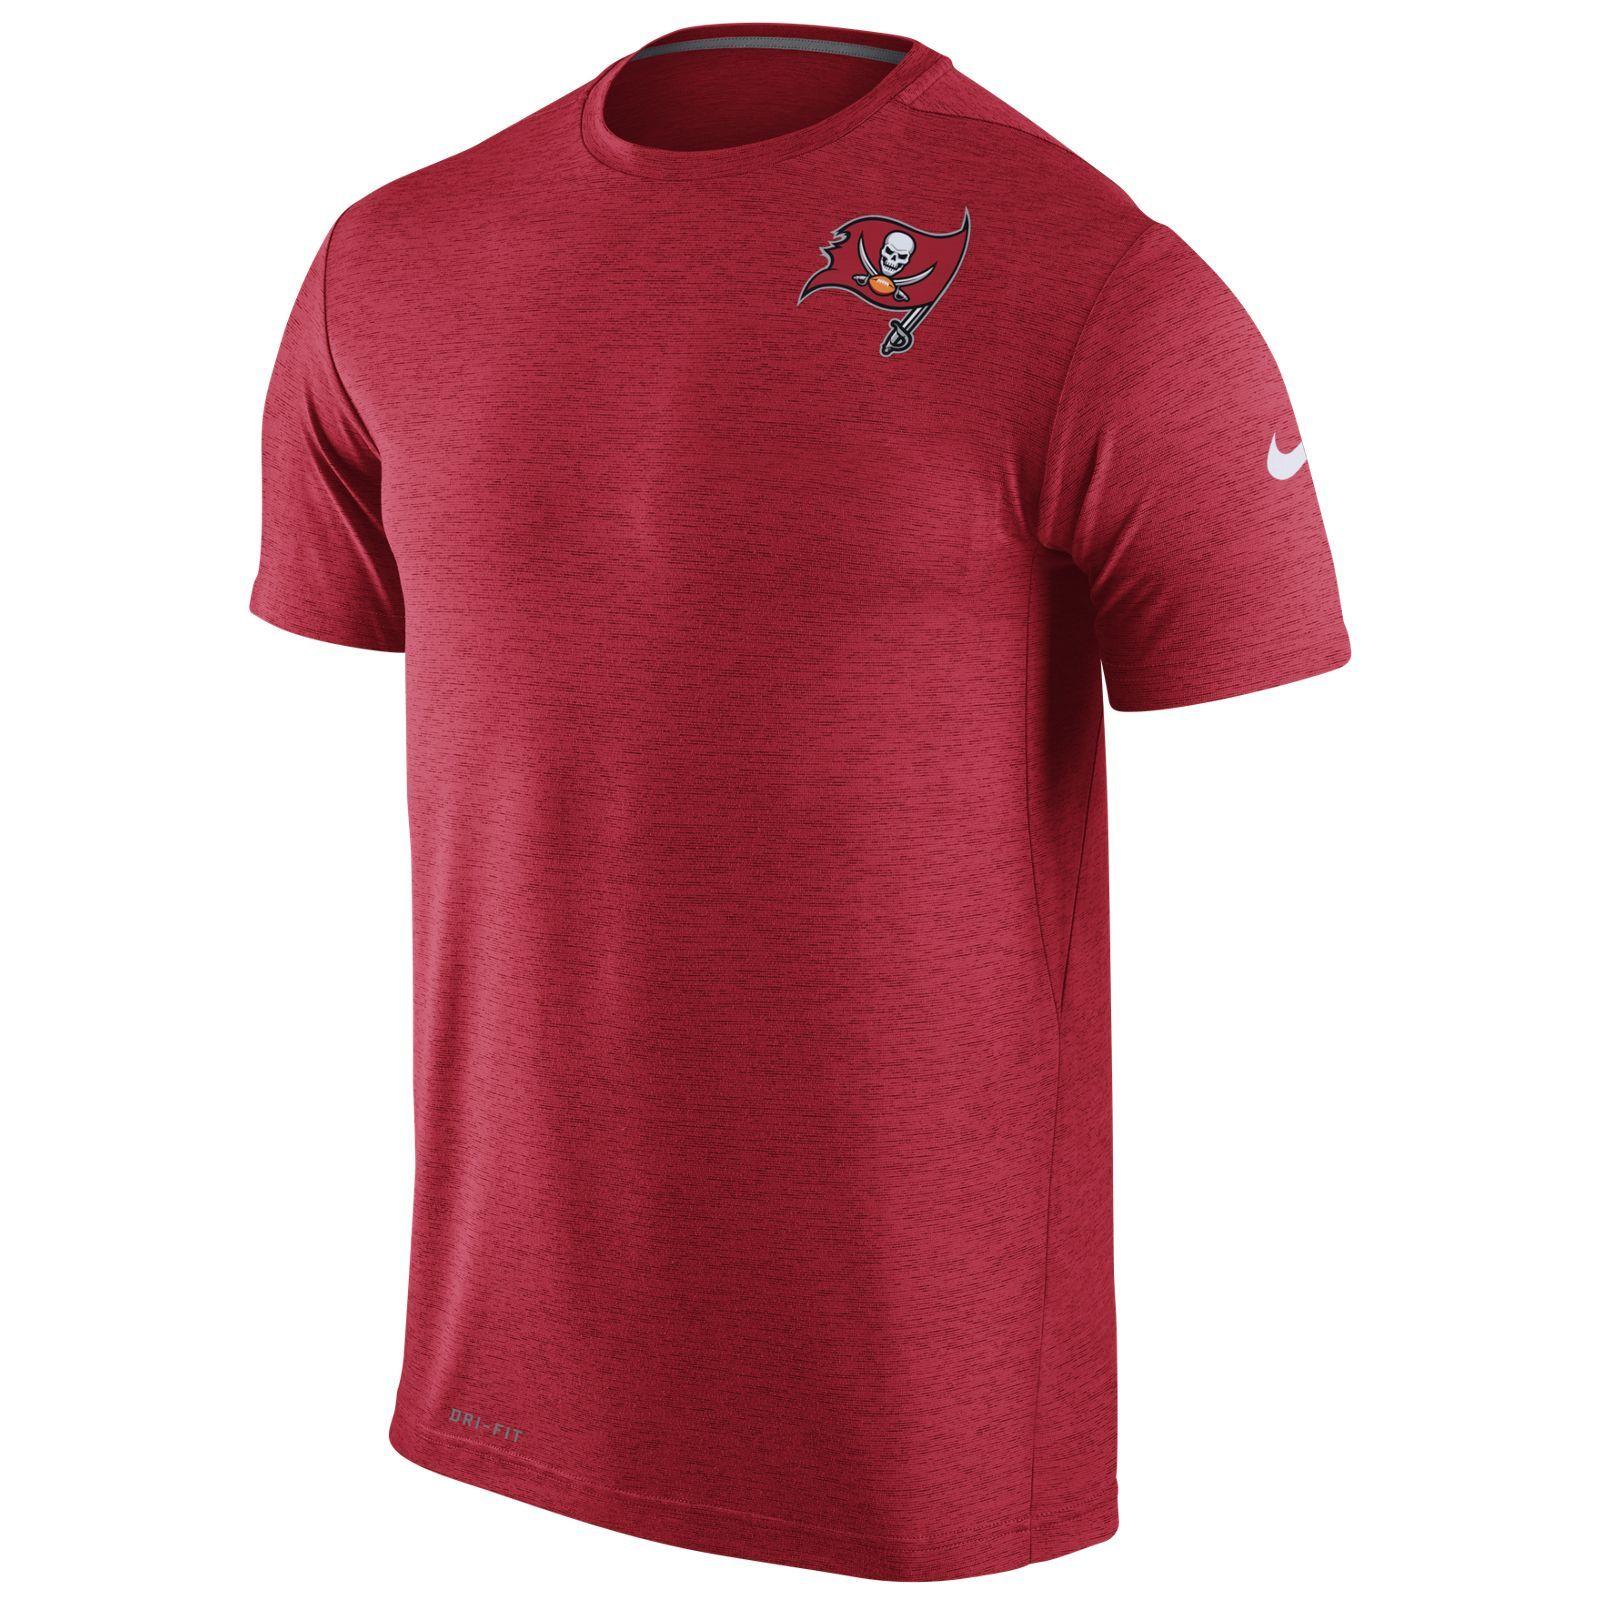 Buy Discount Nike Kansas City Chiefs Red Dri-Fit Touch Performance Men s T- Shirt from Reliable Discount Nike Kansas City Chiefs Red Dri-Fit Touch ... b8fb9600f